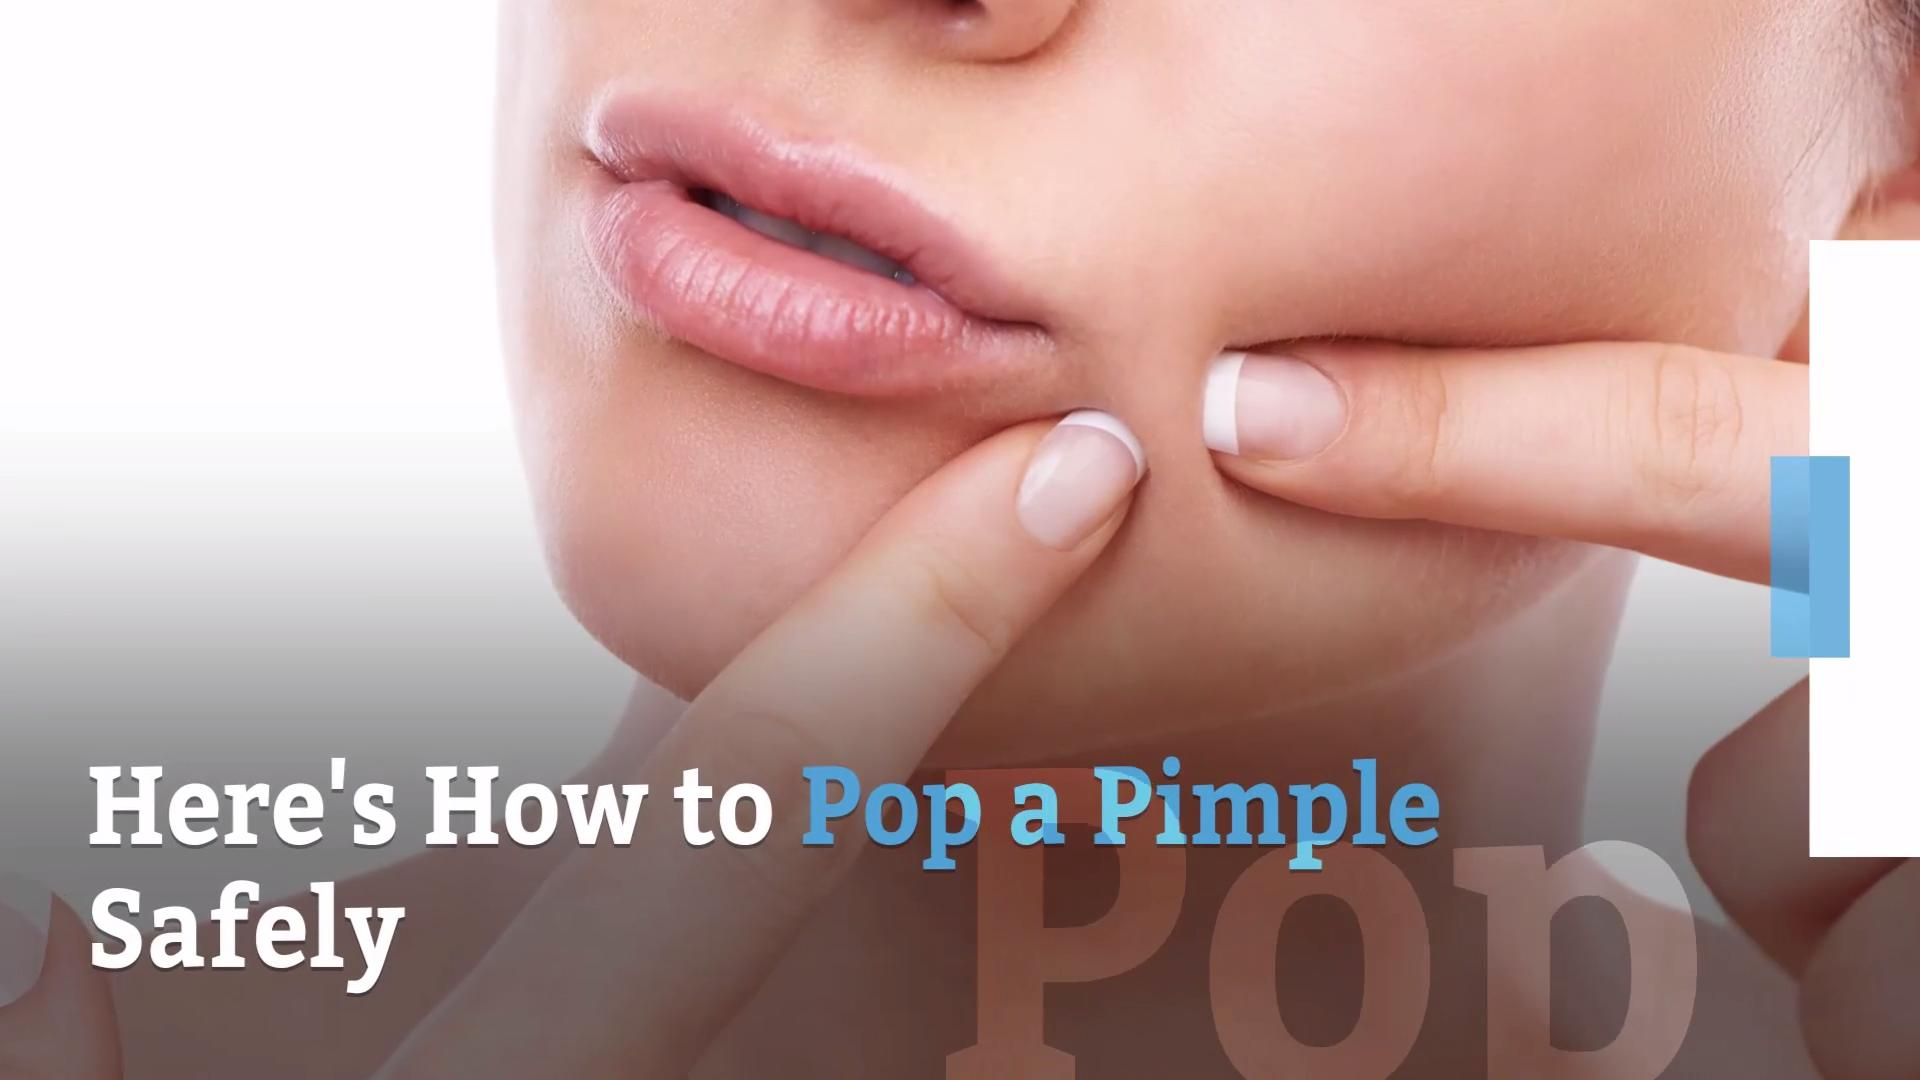 Should you pop a pimple?